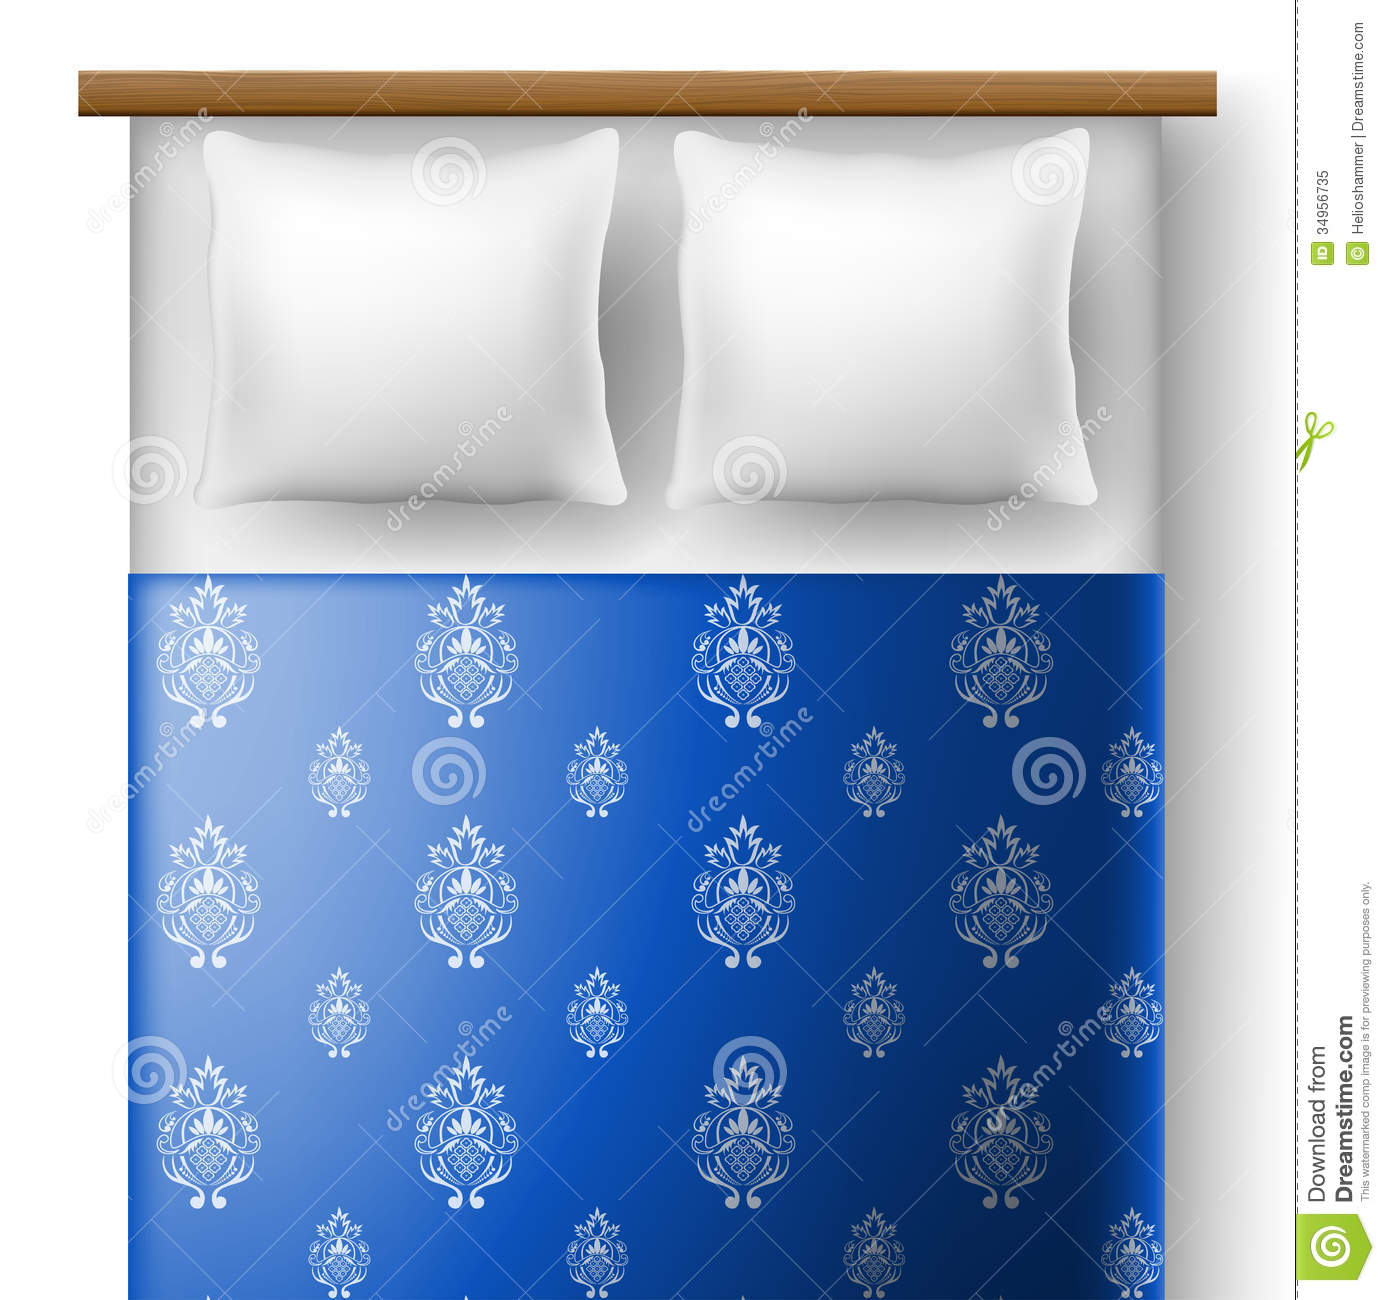 Bed From Top View With Pillows Stock Image  Image 34956735